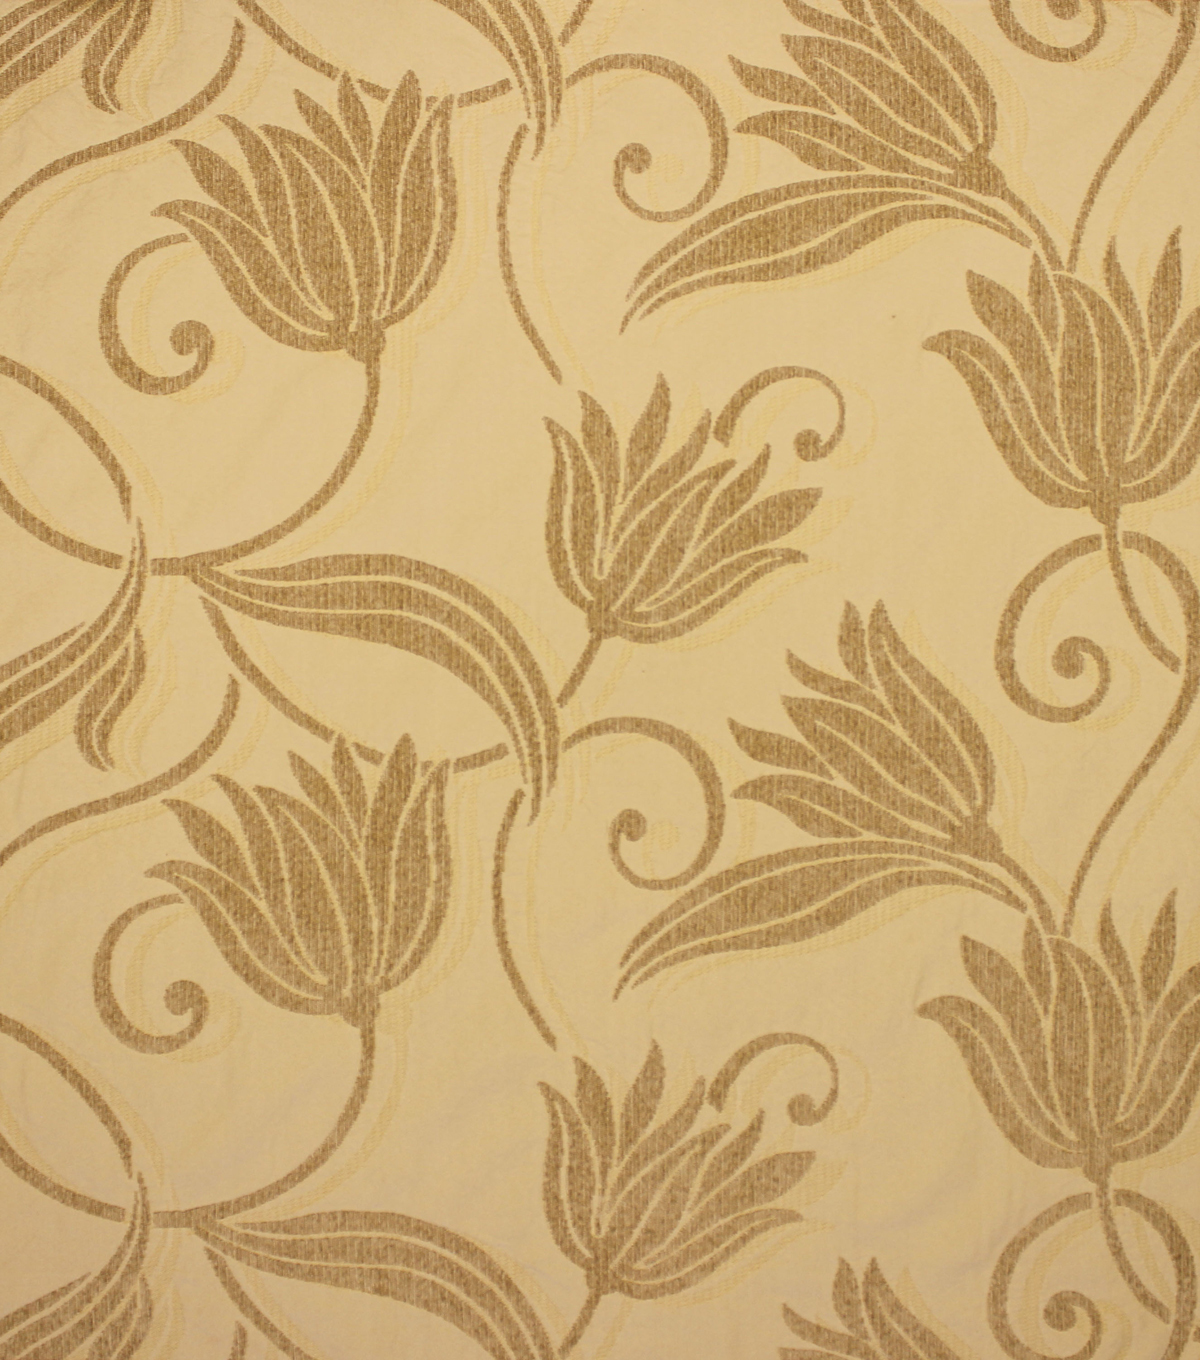 Home Decor 8\u0022x8\u0022 Fabric Swatch-Upholstery Fabric Barrow M8094-5806 Oyster